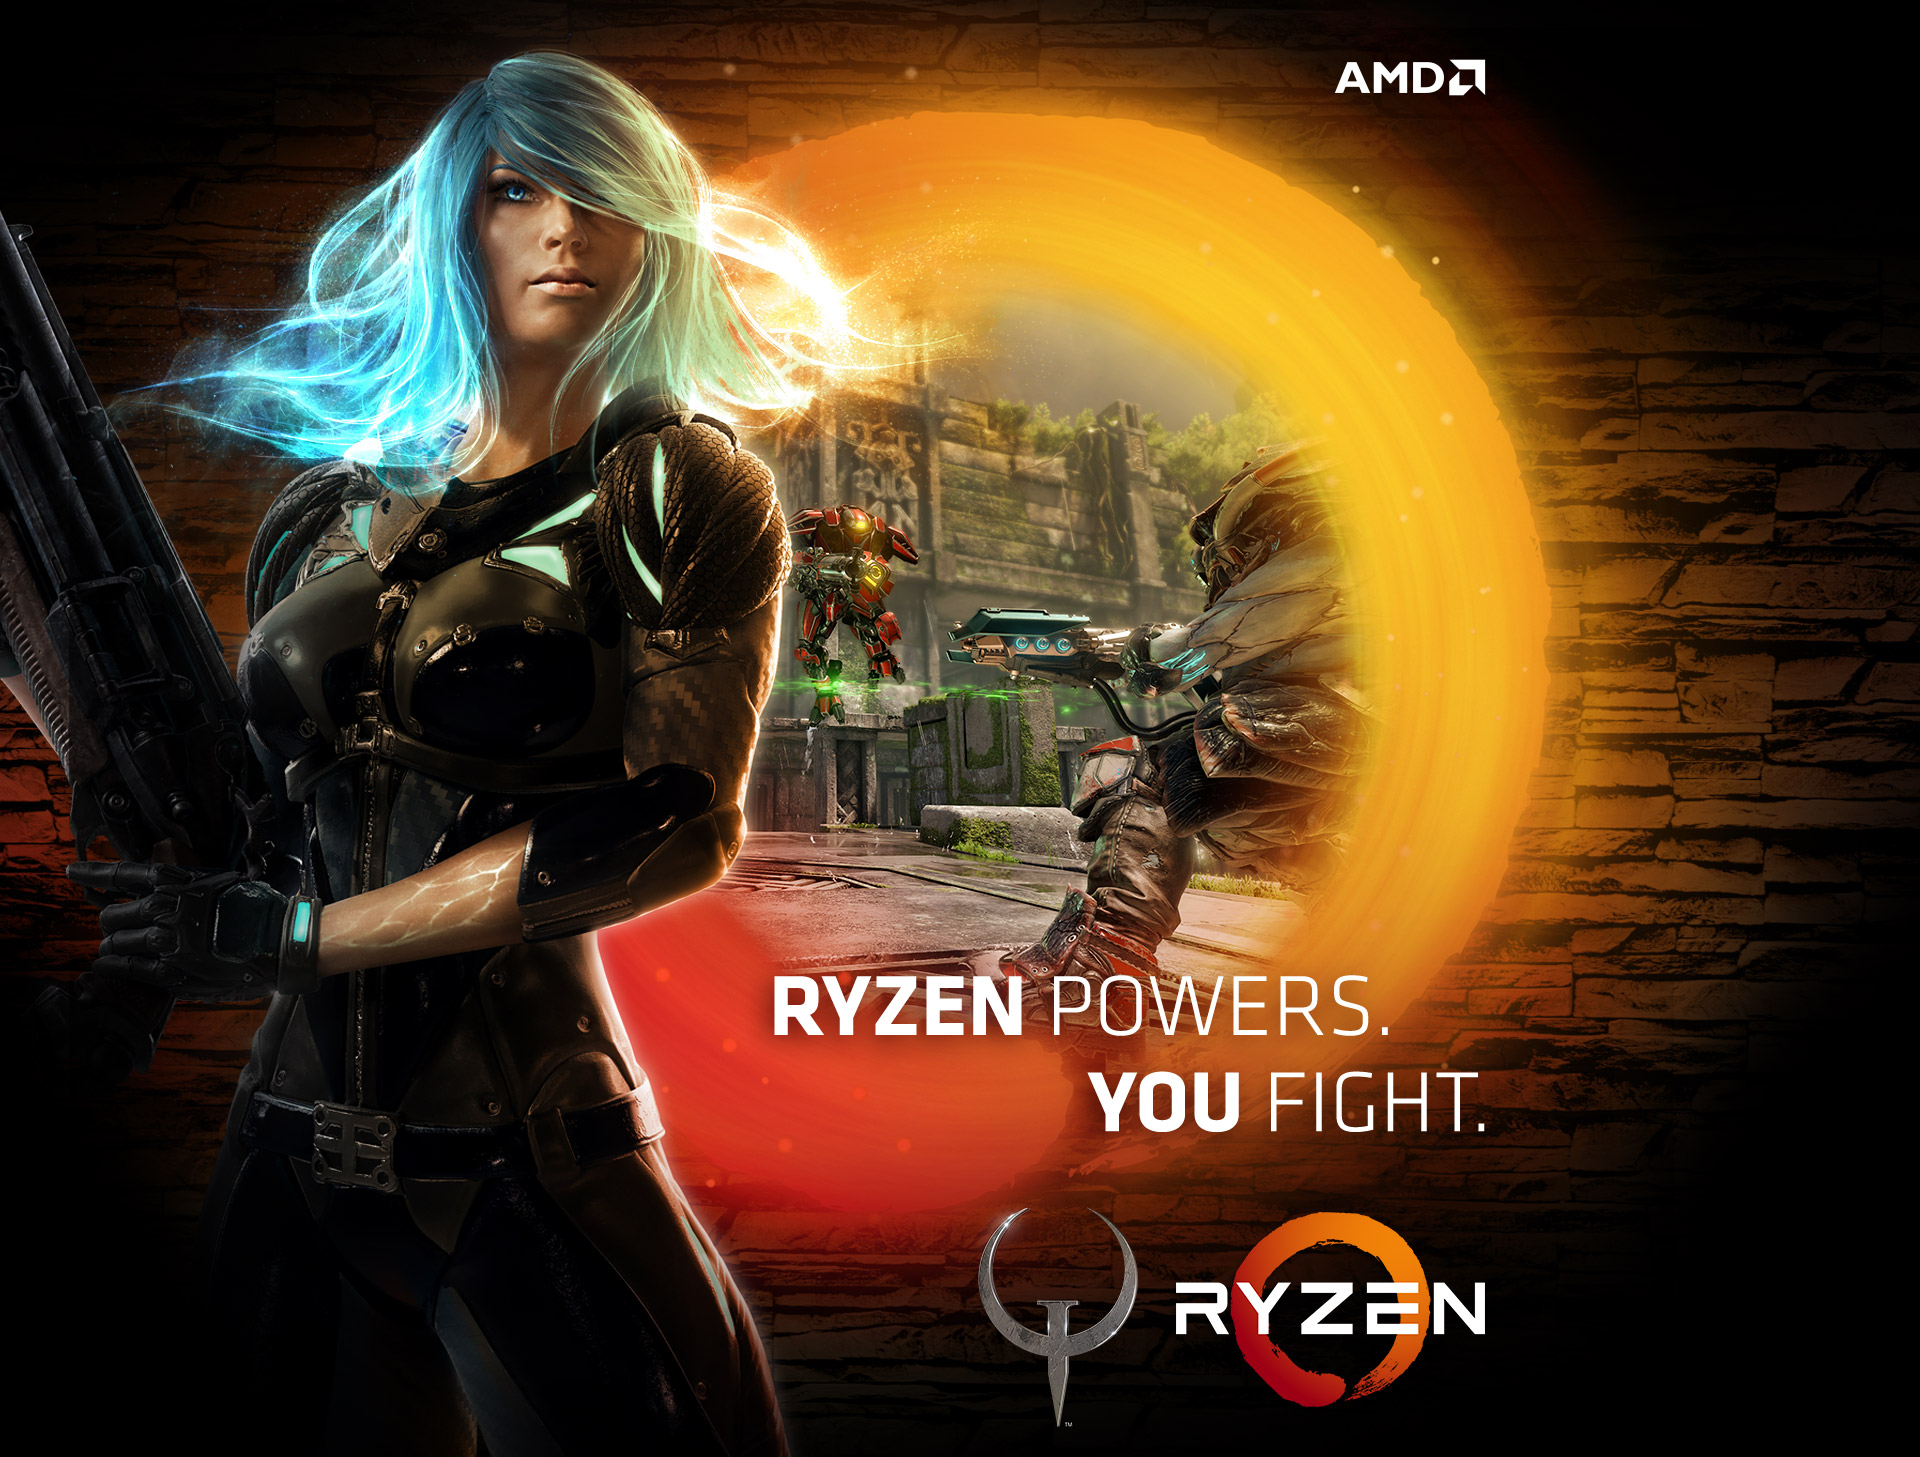 Ryzen Powers. You Fight.